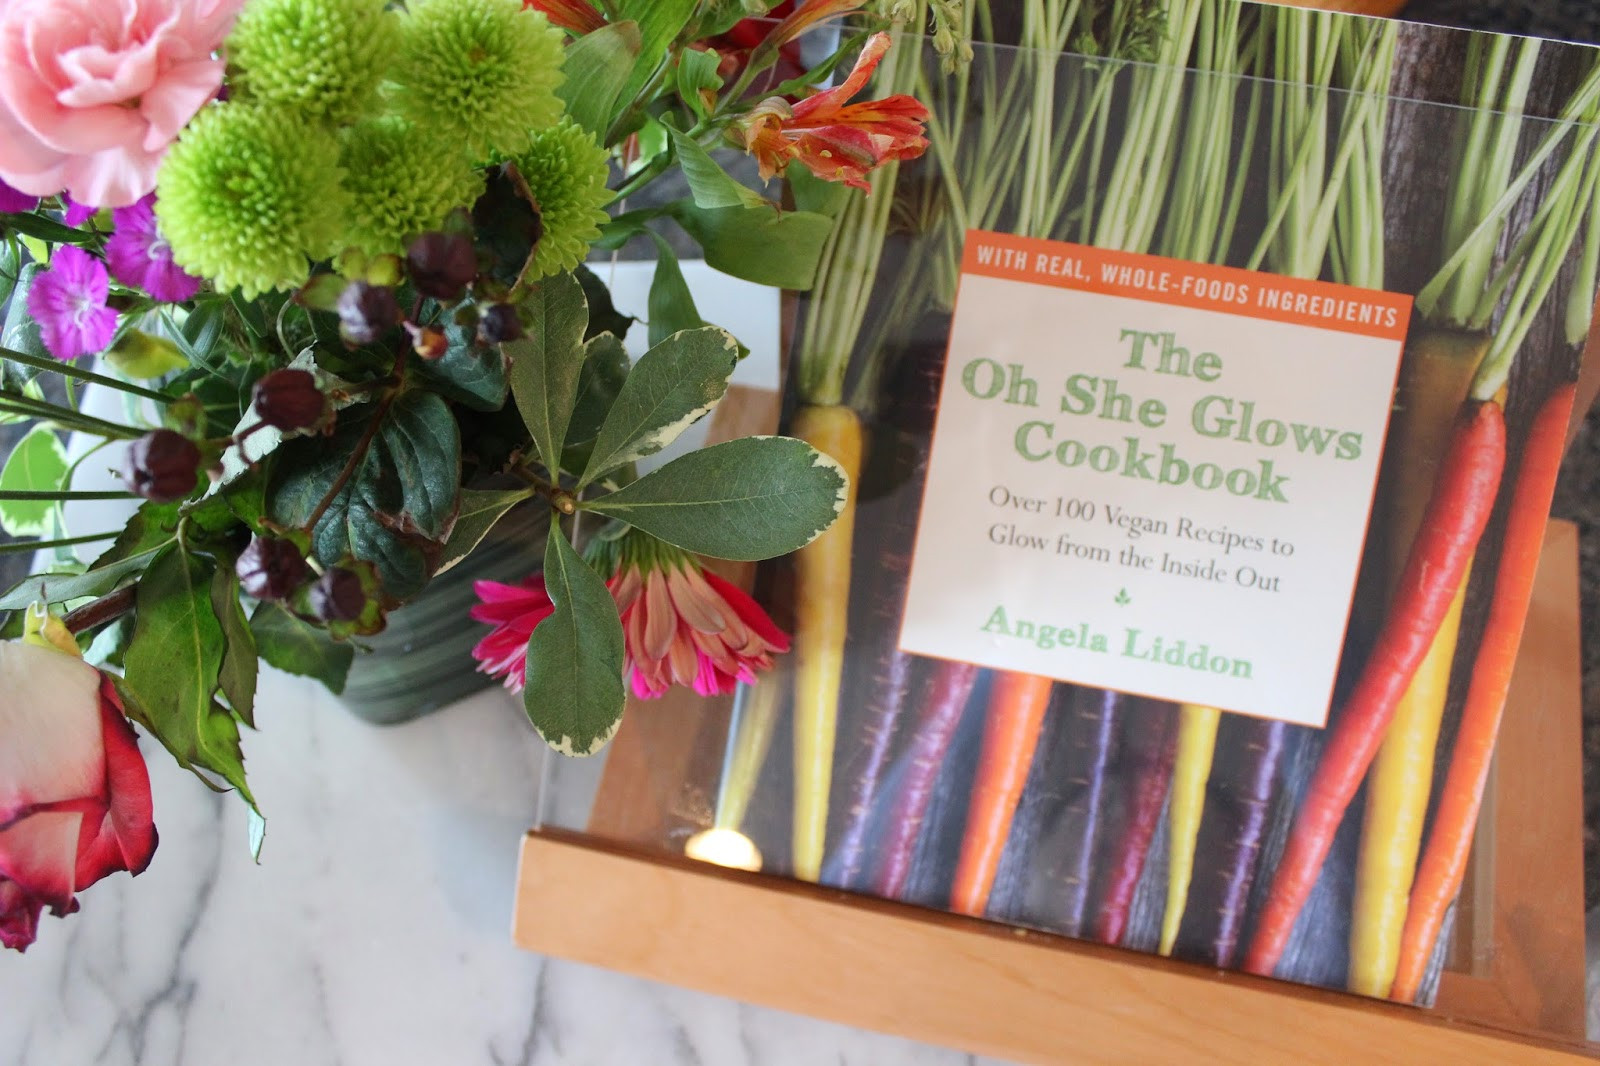 The Oh She Glows Cookbook: Over 100 Vegan Recipes To Glow From The Inside Out  Pralines and Crunches The Oh She Glows Cookbook